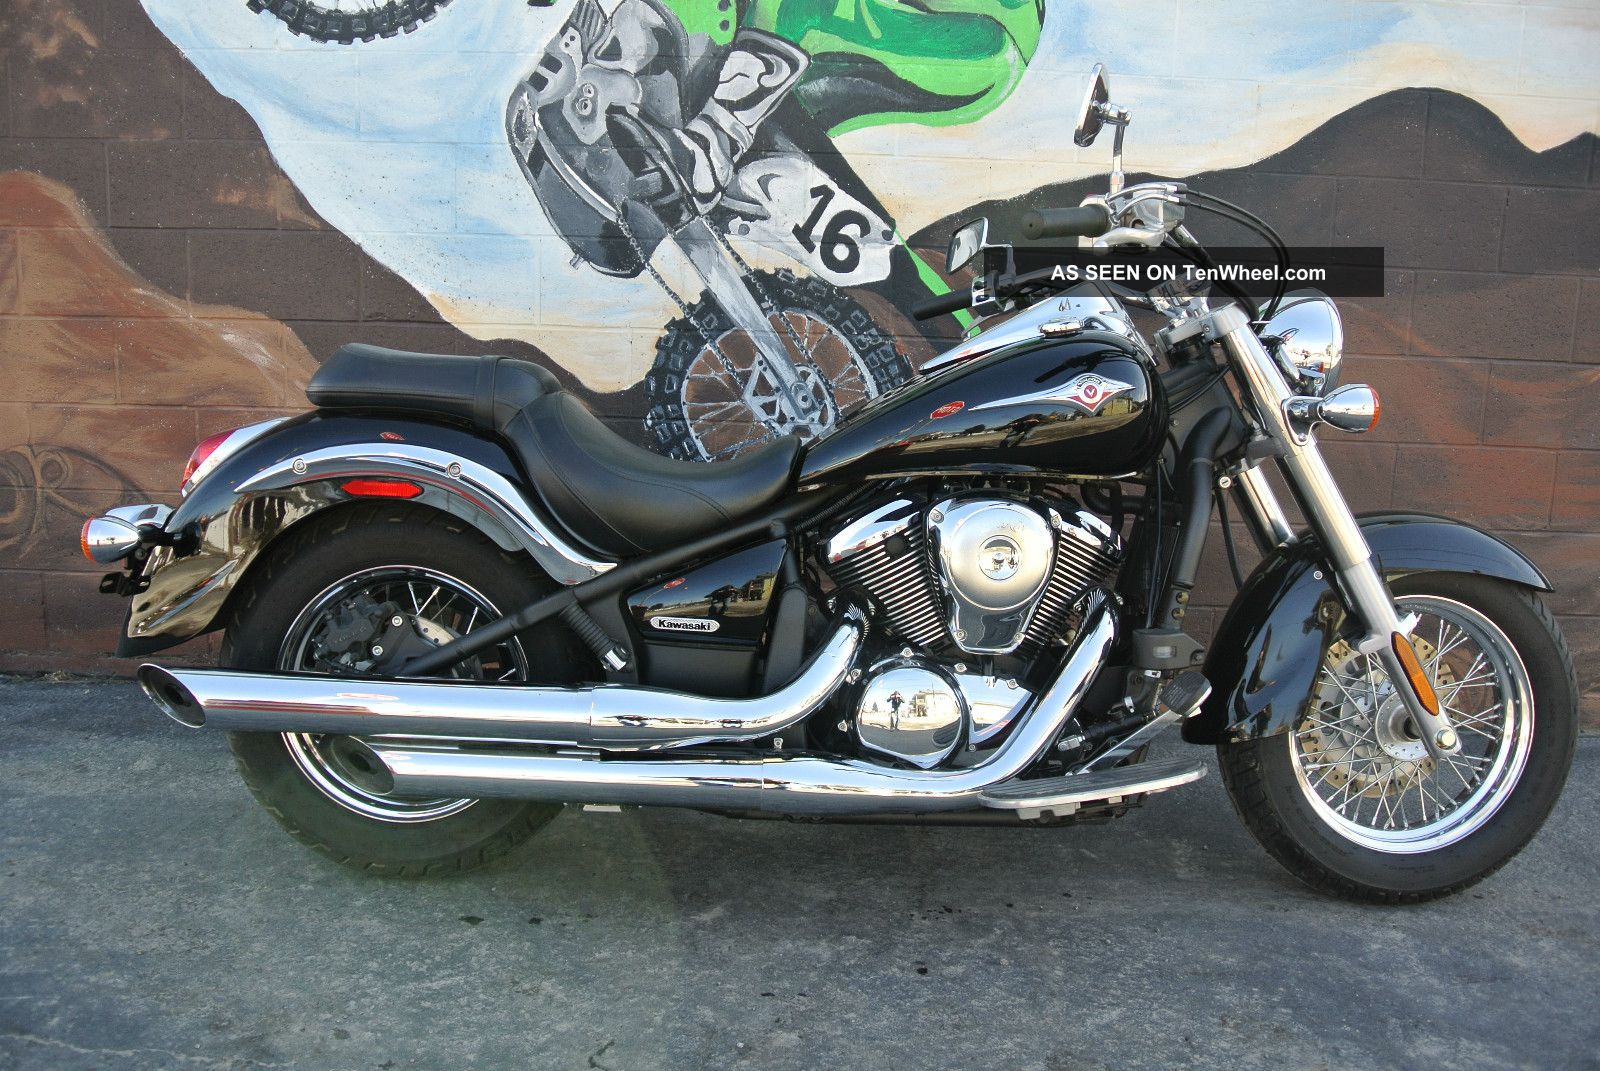 2009 kawasaki vulcan 900 pictures to pin on pinterest pinsdaddy. Black Bedroom Furniture Sets. Home Design Ideas